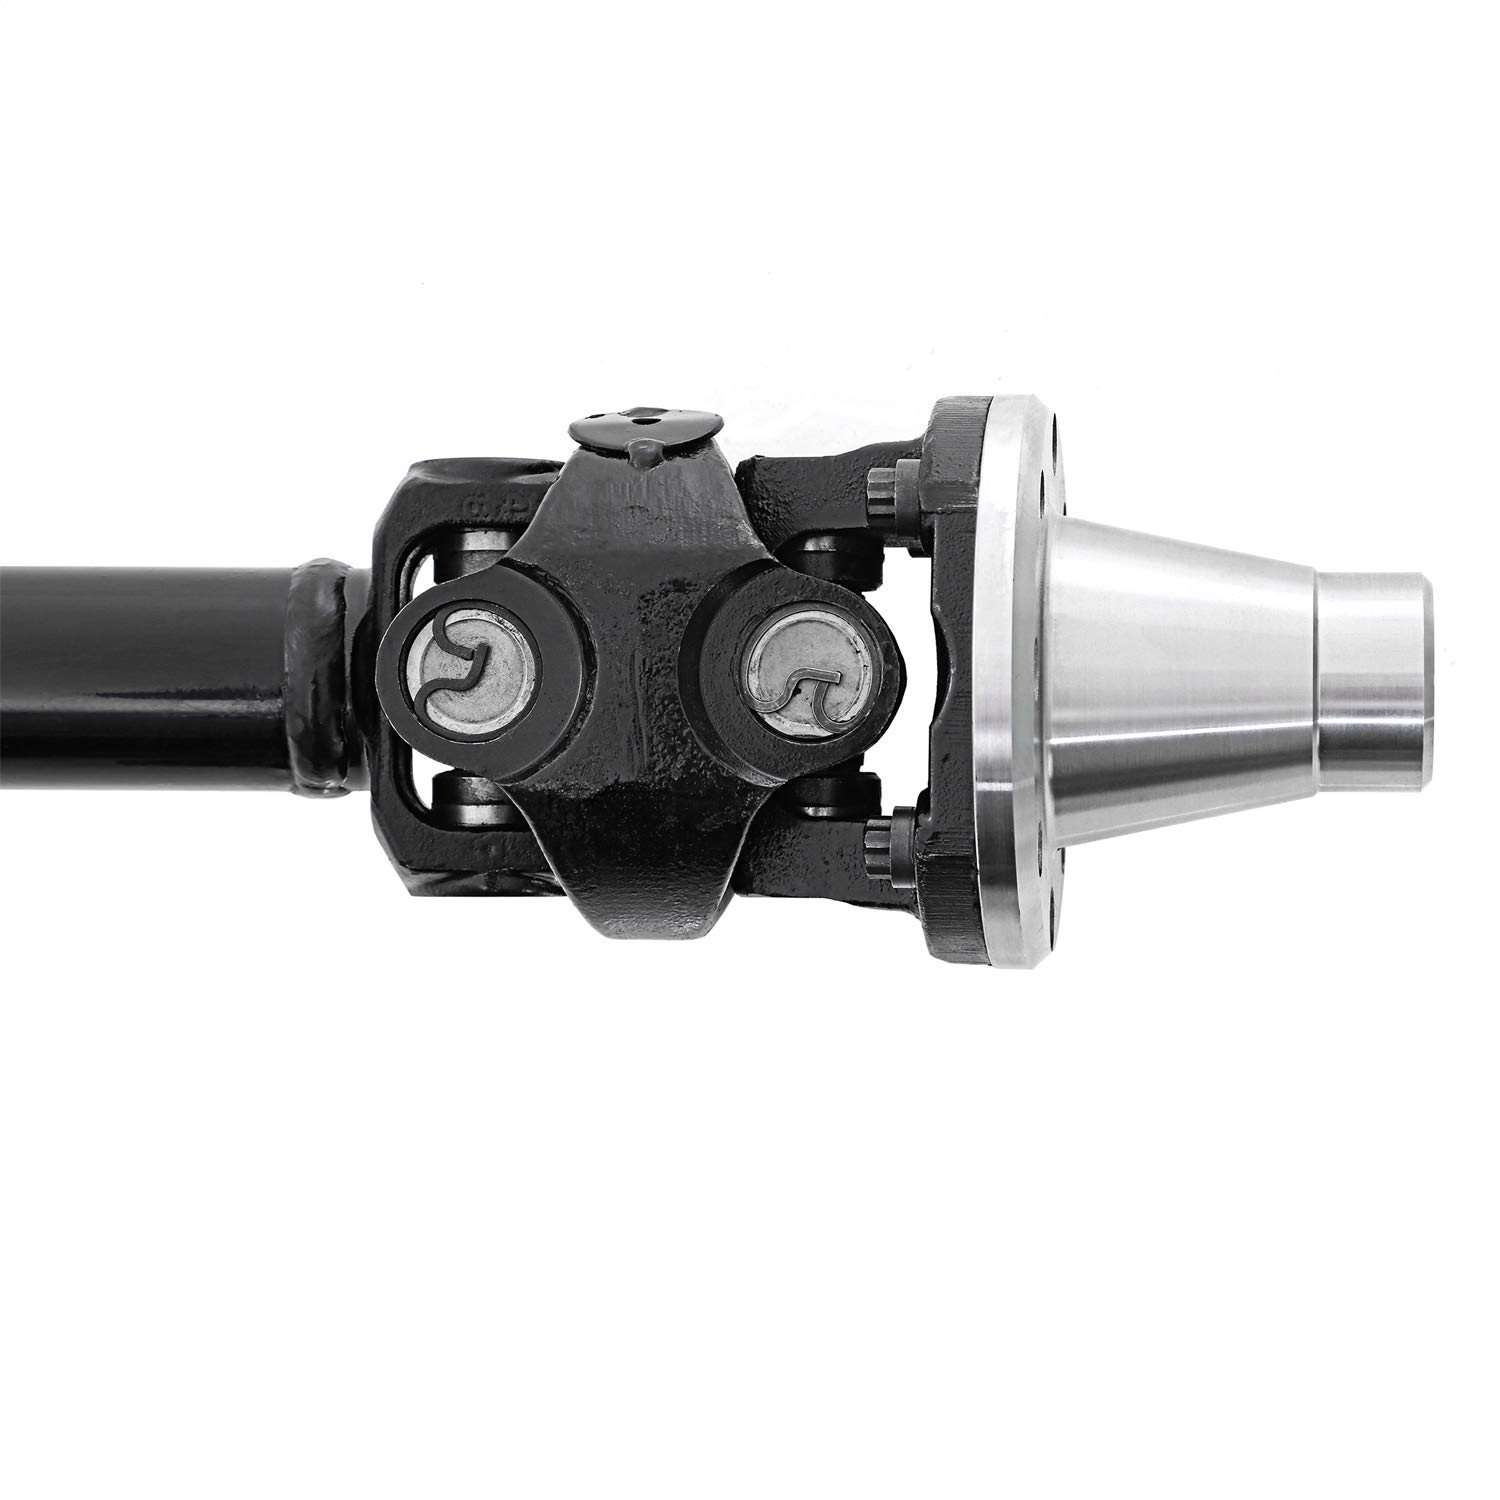 G2 Axle and Gear 92-2050-3 CV Style Driveshaft Front Max Lift Height 6 in. Double Cardan CV Style Driveshaft